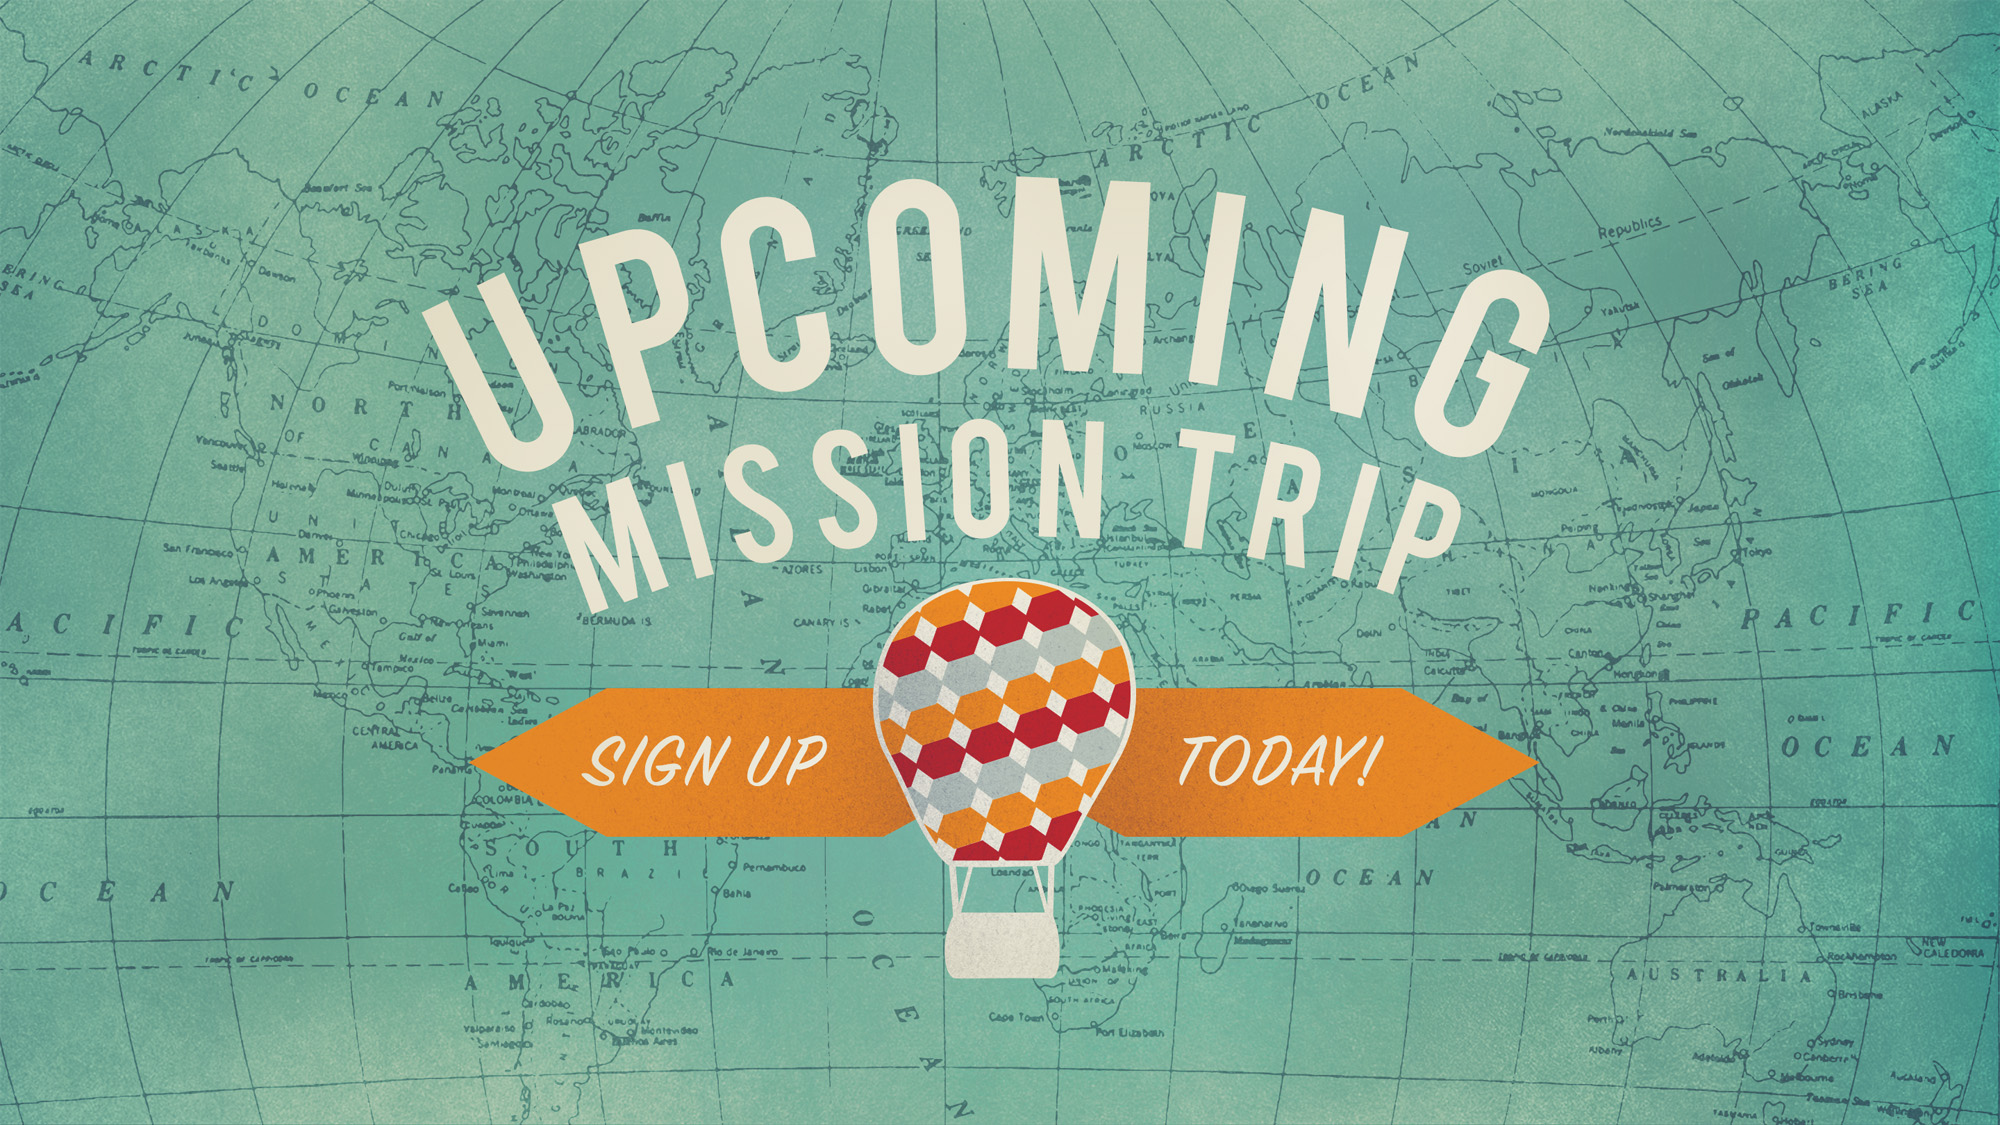 Faith Kids Crew Mission trip - AQB -April 28 - 30 - 5th grade faith crew attenders only